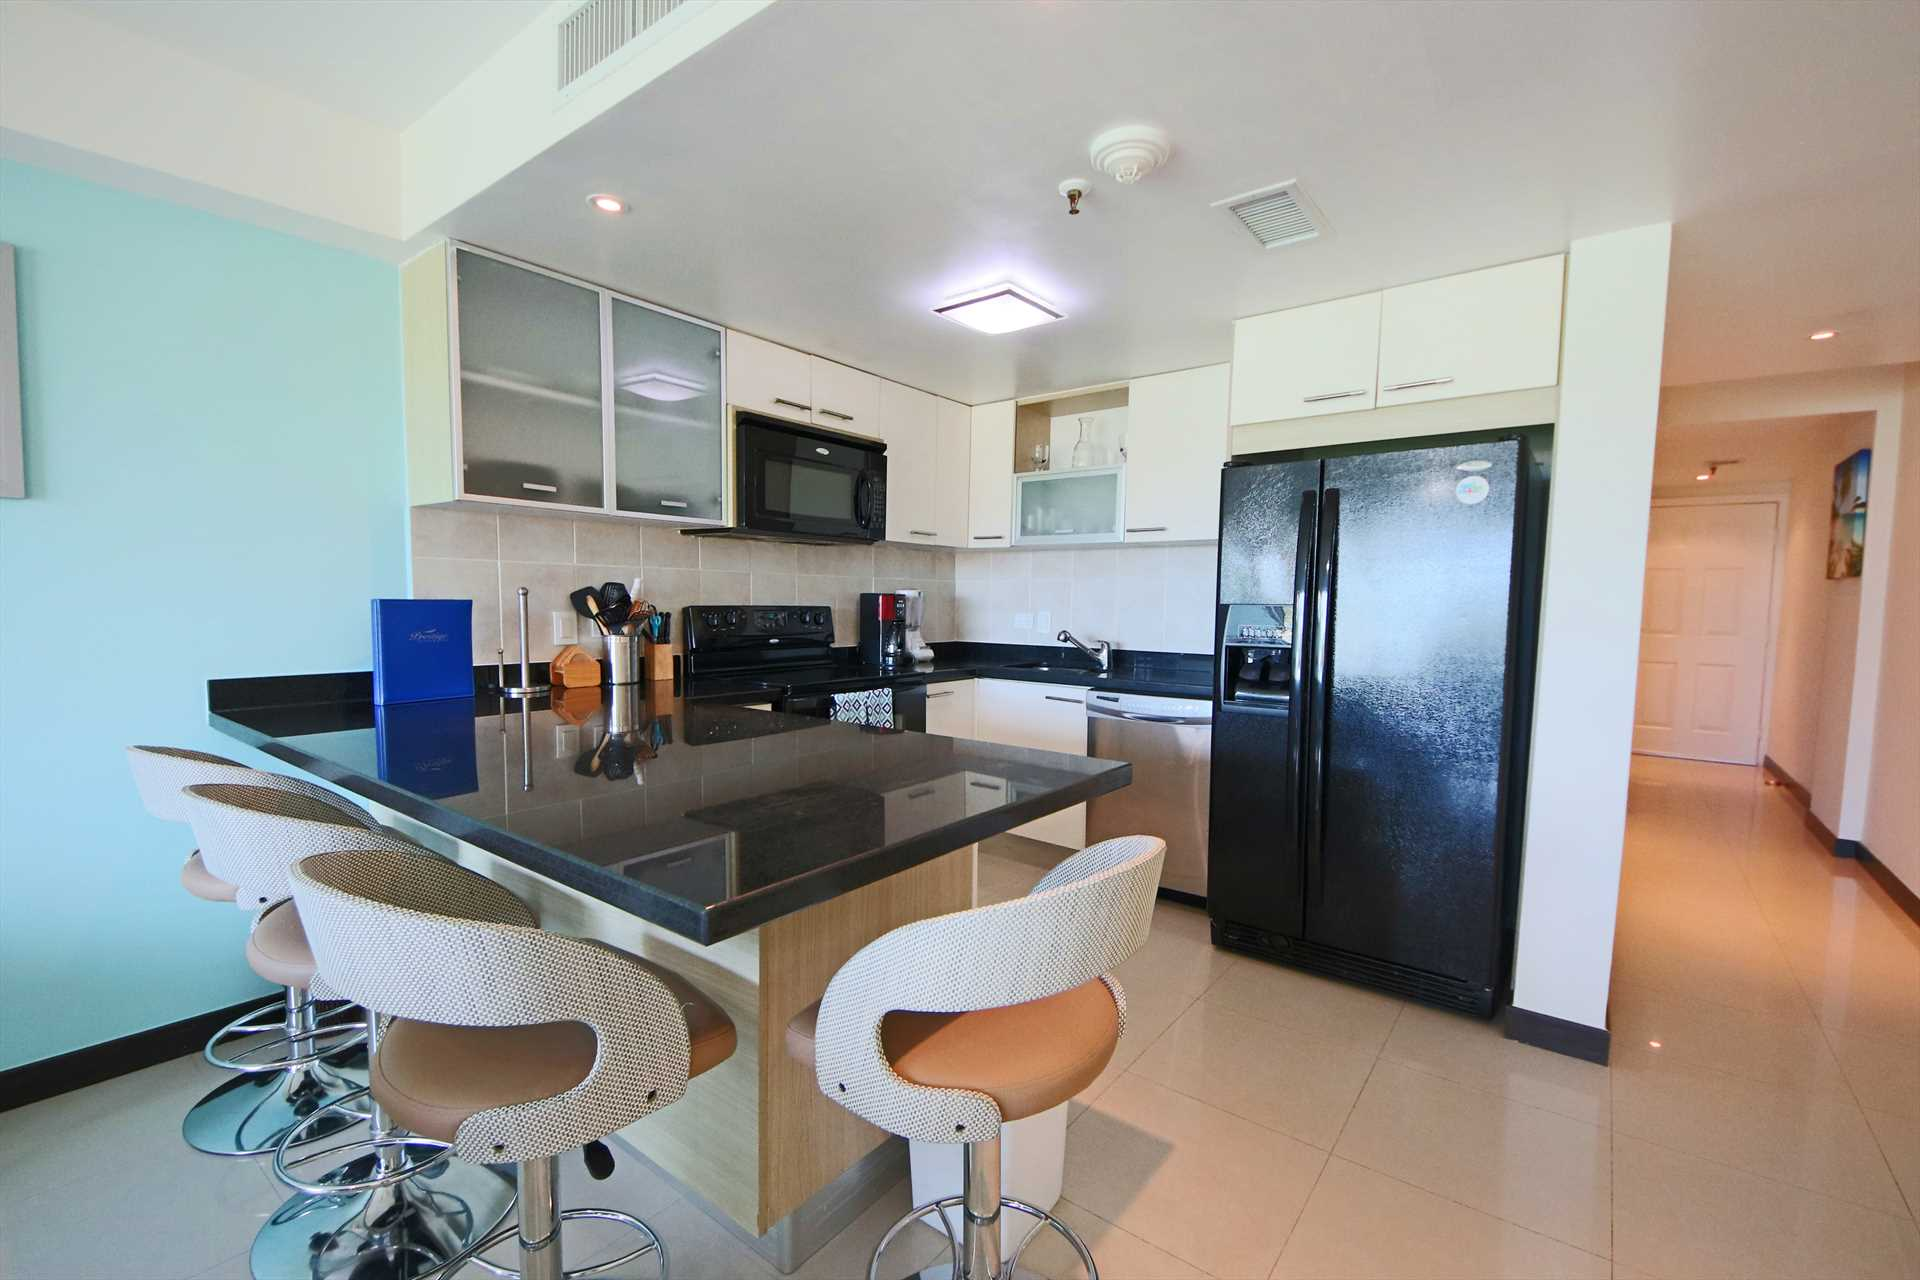 A full-size fully equipped kitchen with 4-bar seat